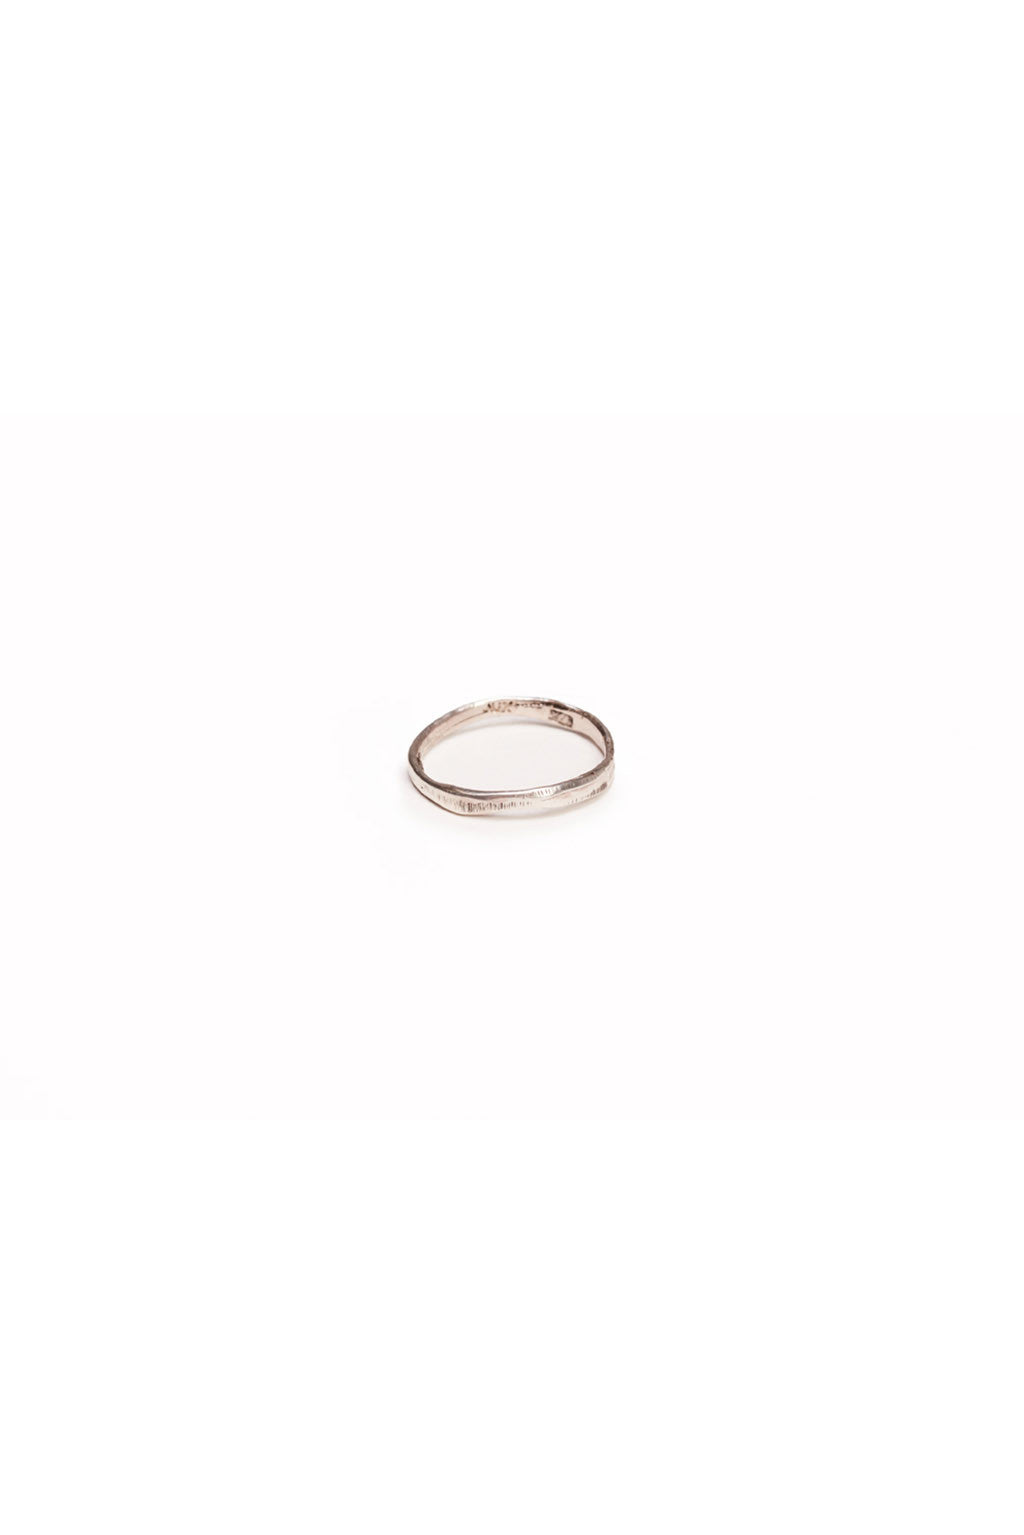 'SINGLE AF' RING BY NEEDY X JUX